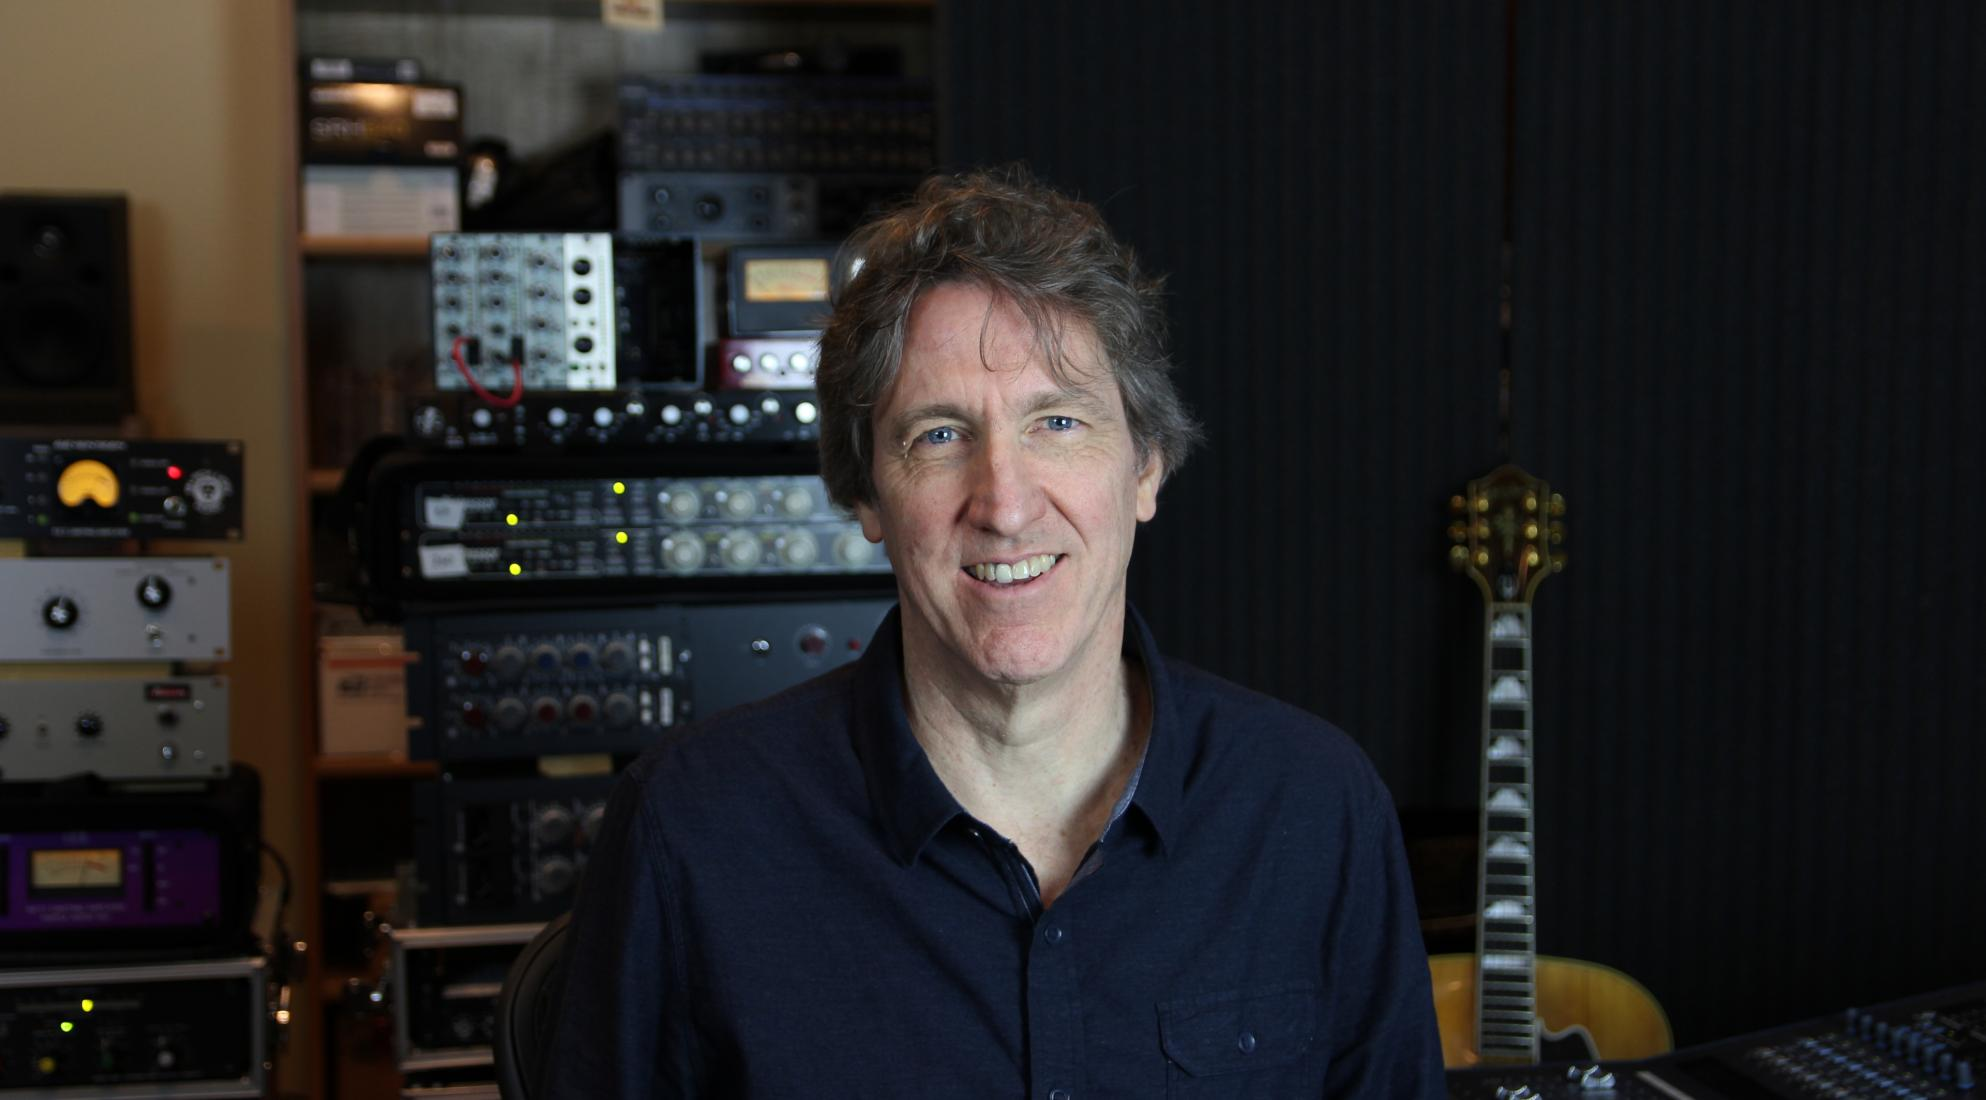 Dave O'Donnell